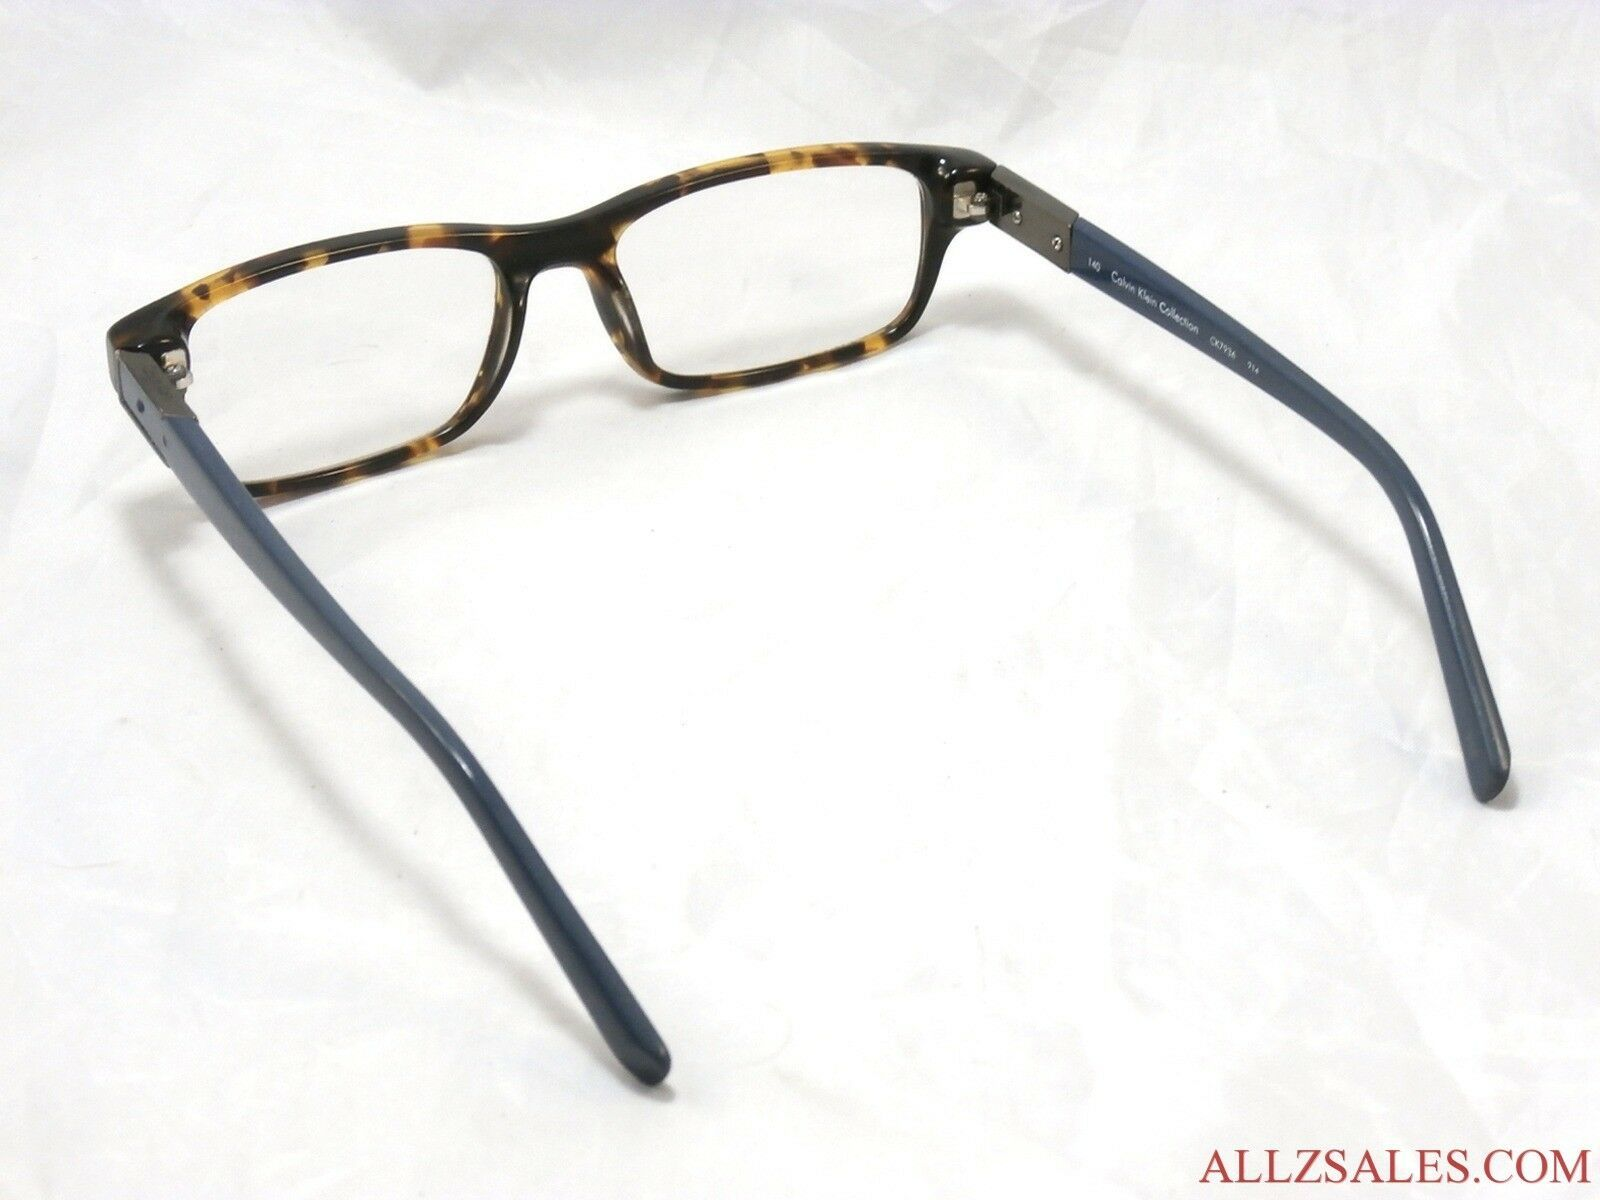 Clavin Klein Collection CK 7936 Men's Prescription Eyeglasses Frame. Havana #818